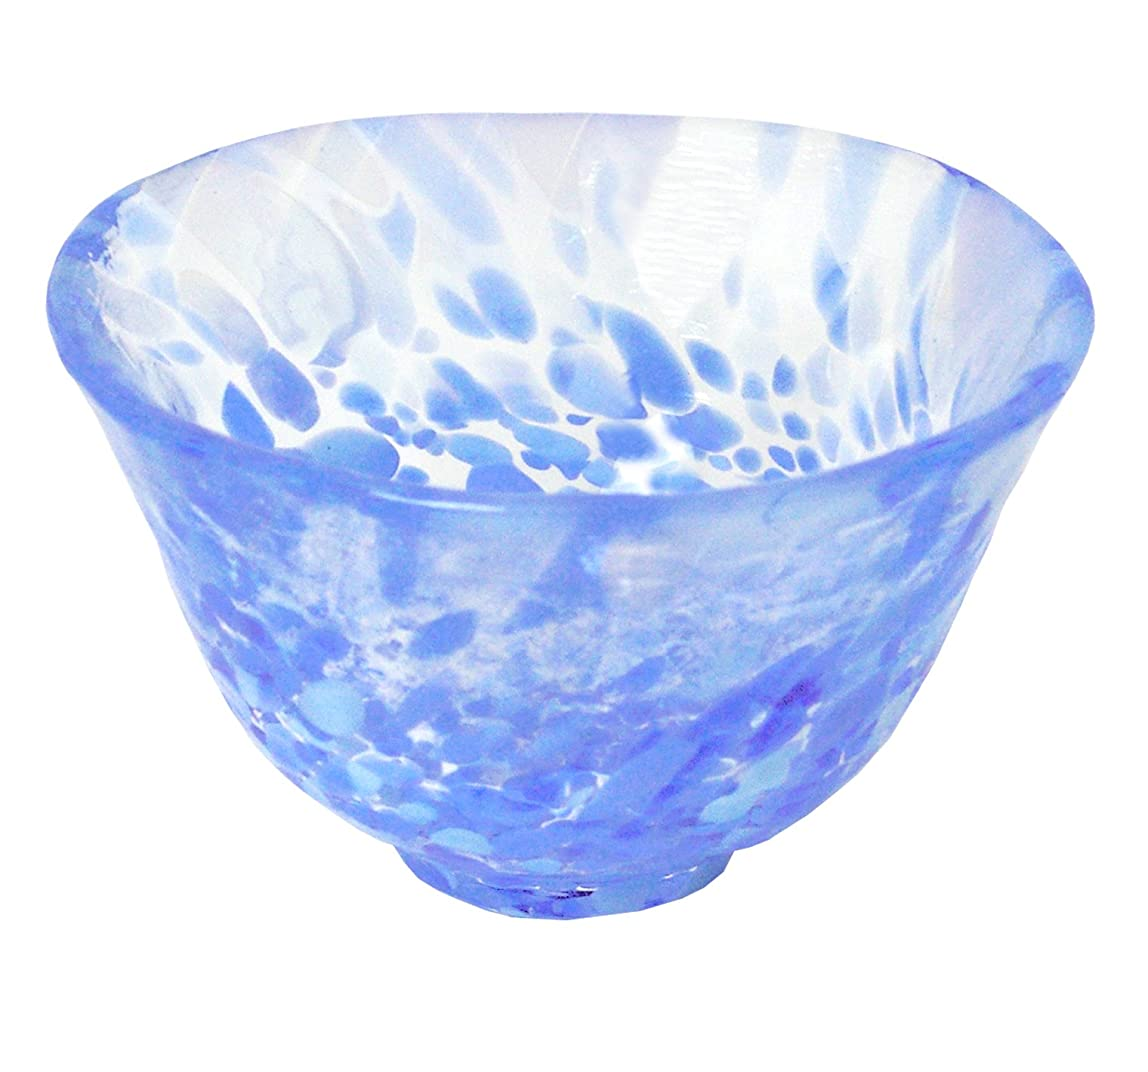 Japanese Traditional Glass, Small Sake Cup,